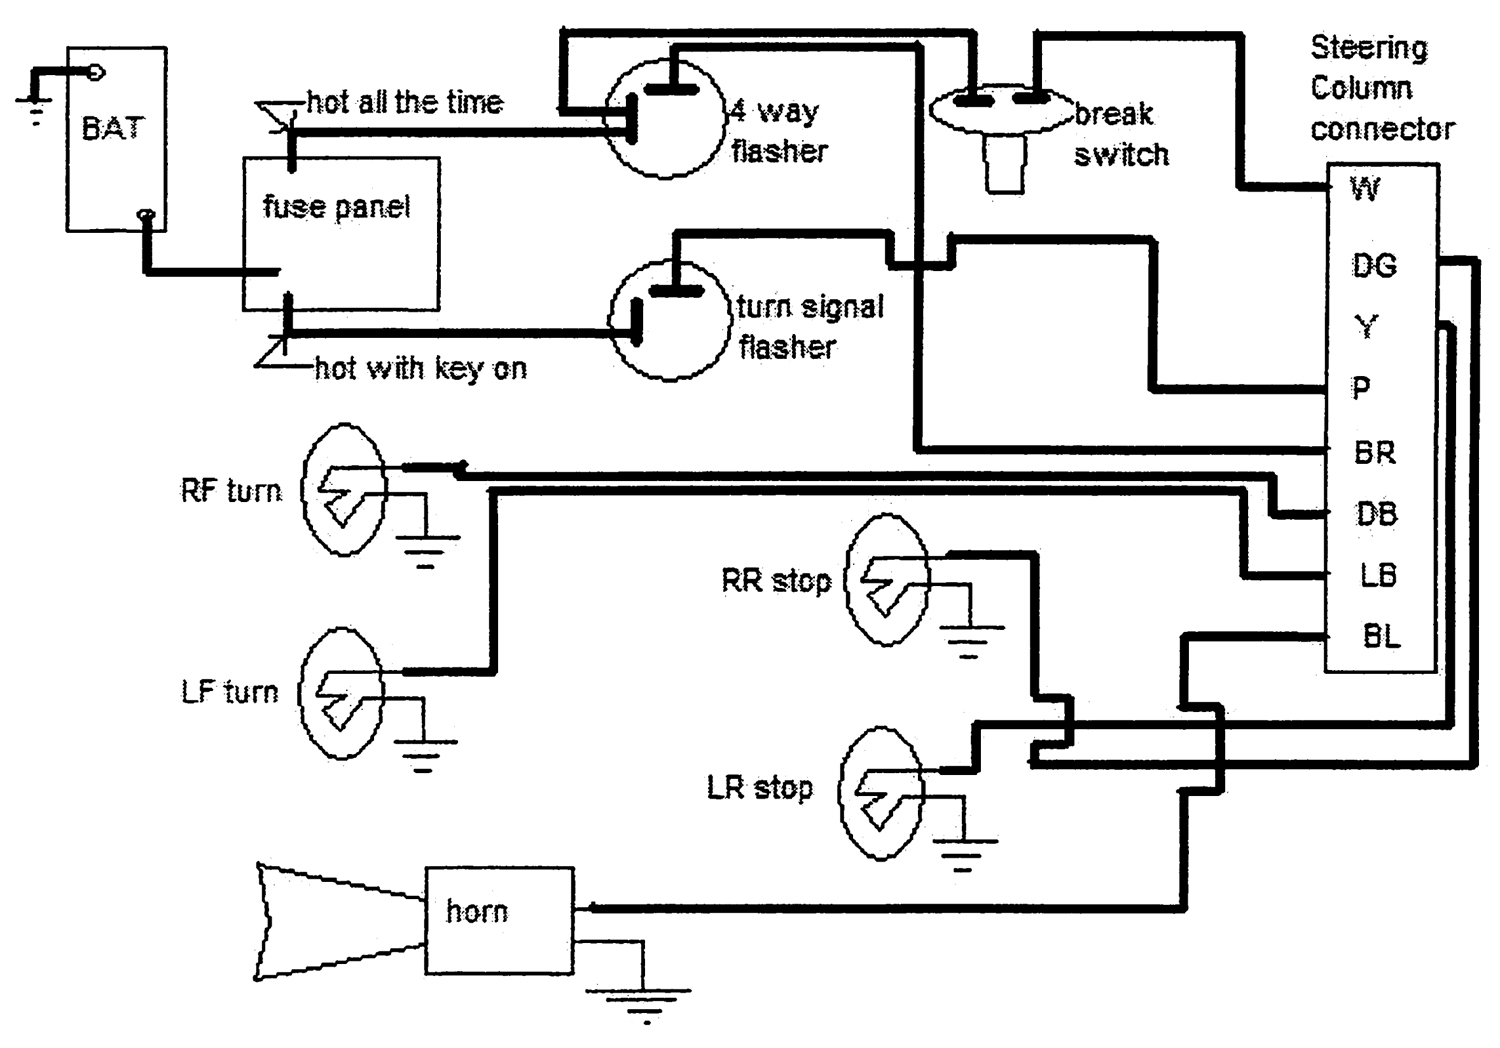 1990 Gm Steering Column Wiring Diagram